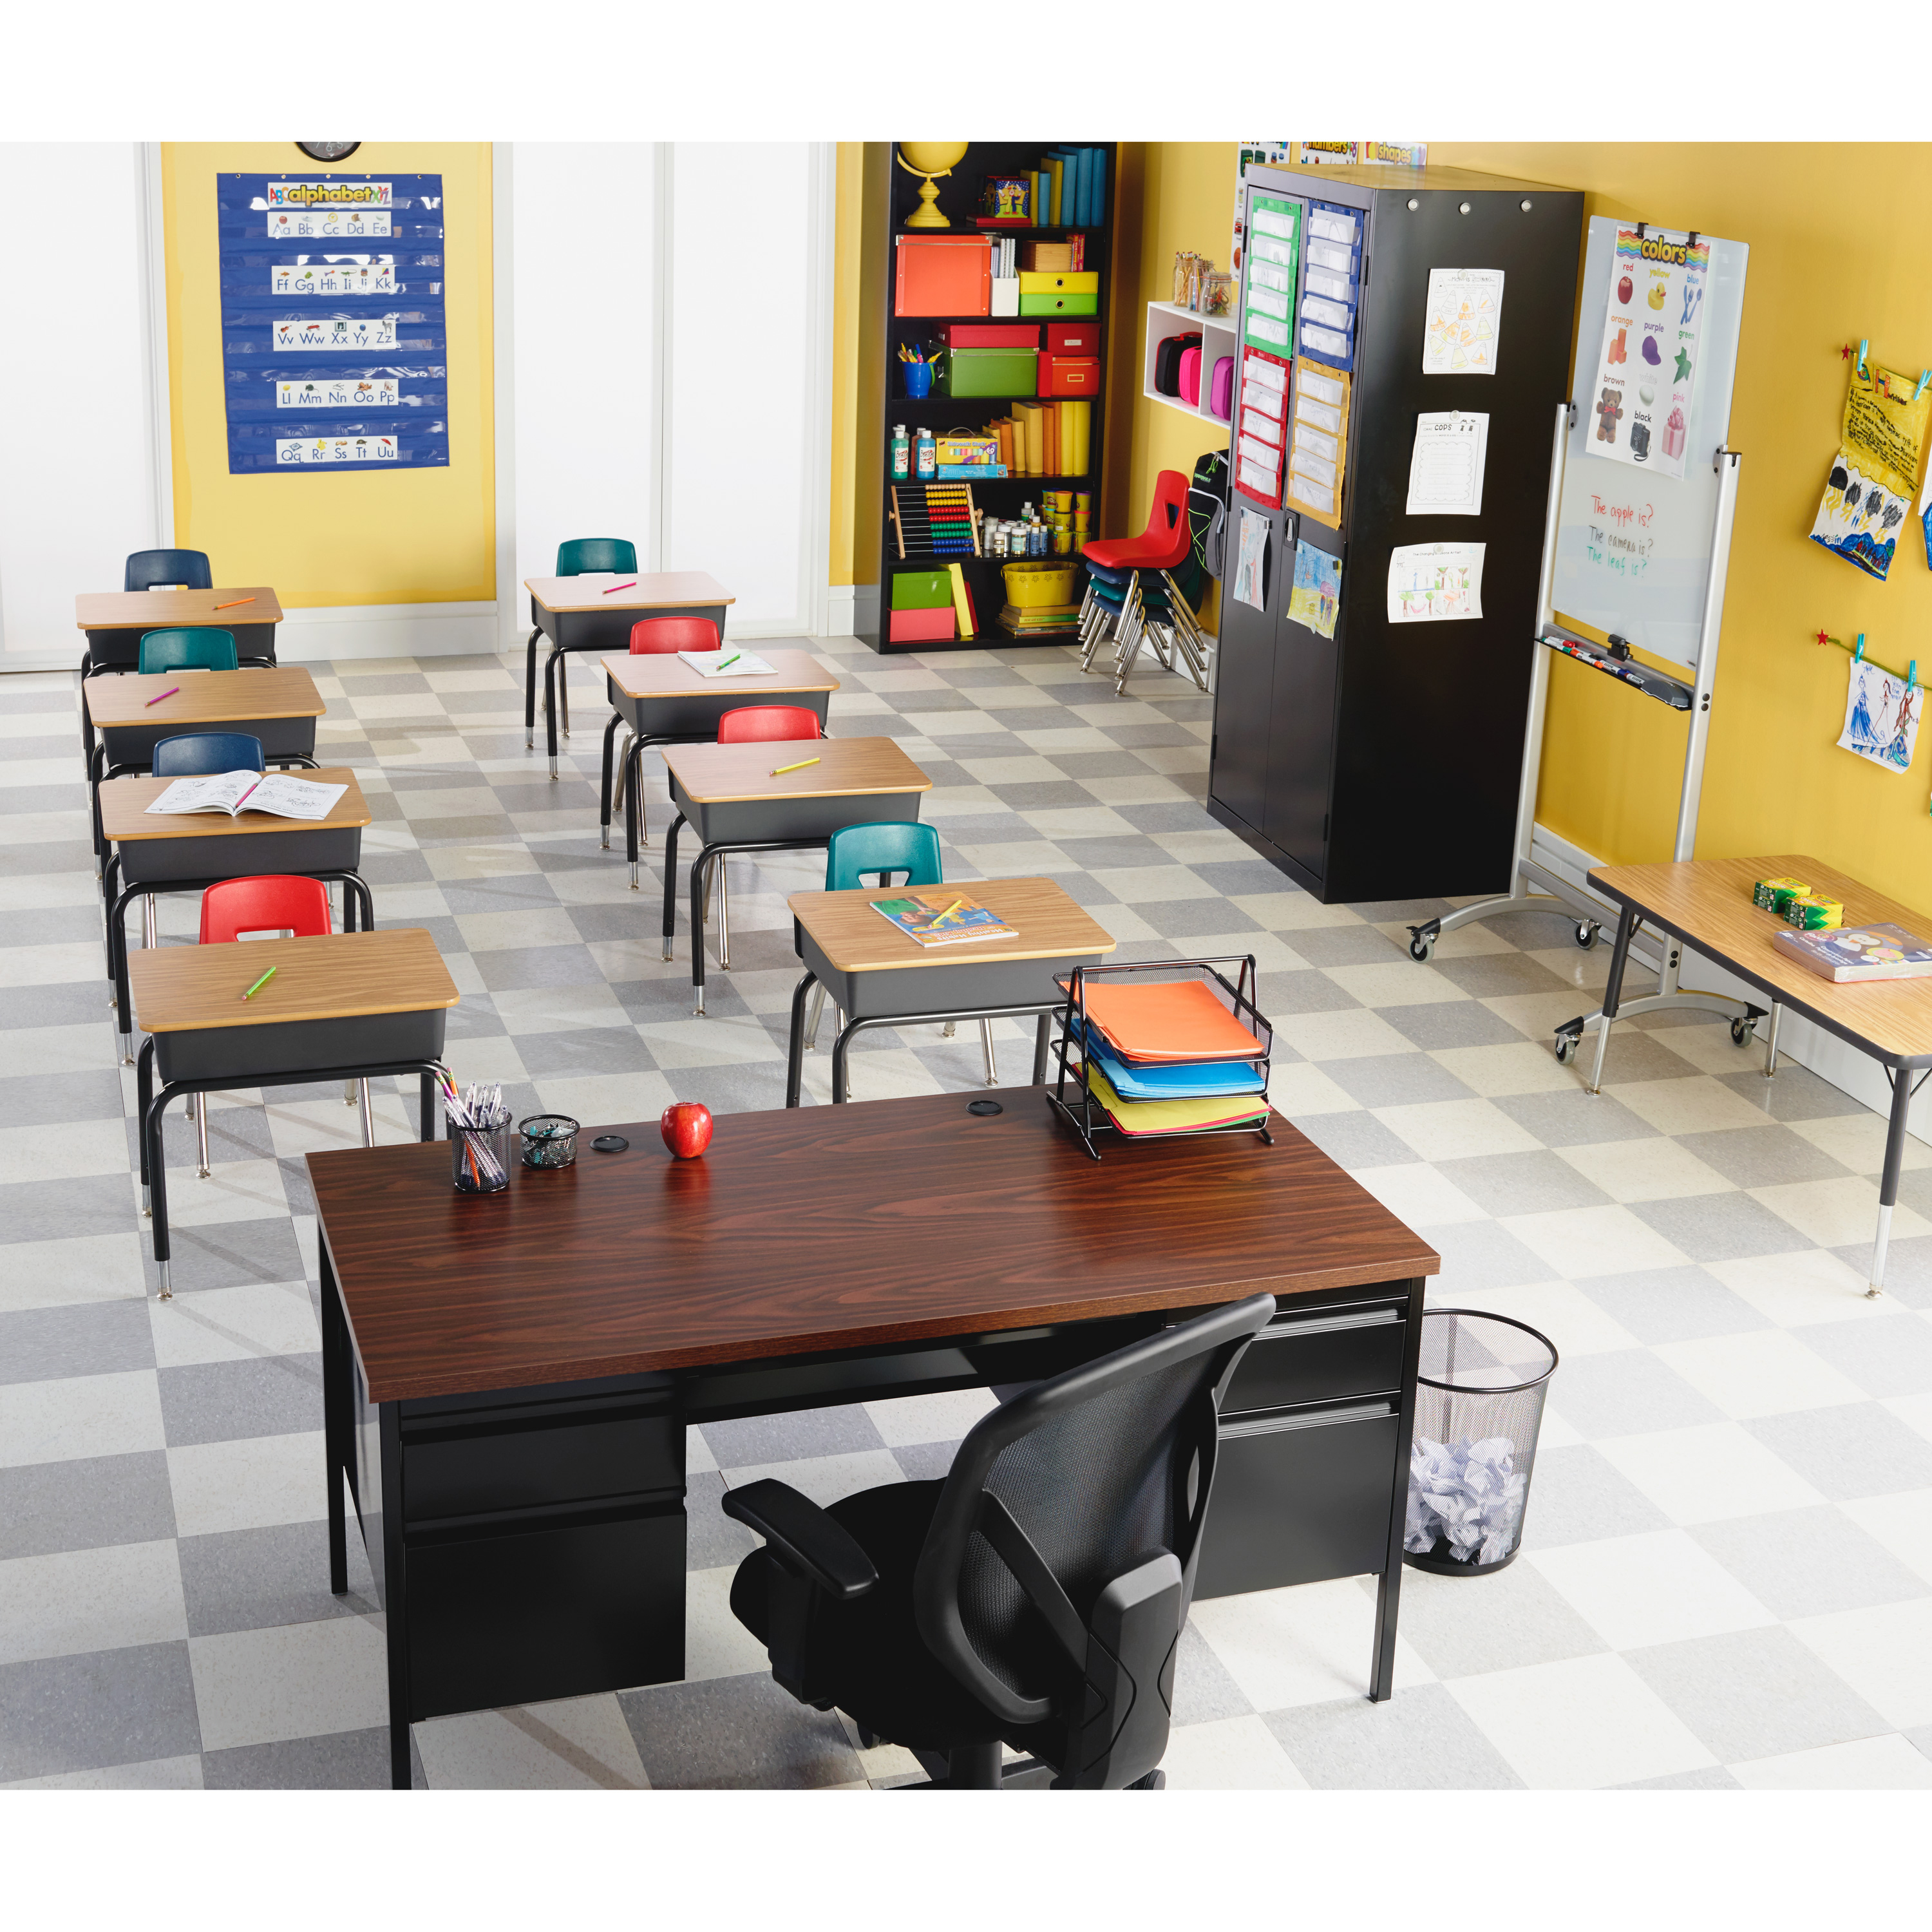 High Quality Call Craft For A Free Consultation Of Our Educational Furniture Offerings.  Let Lorell Work For You While You Educate Our Future Leaders!